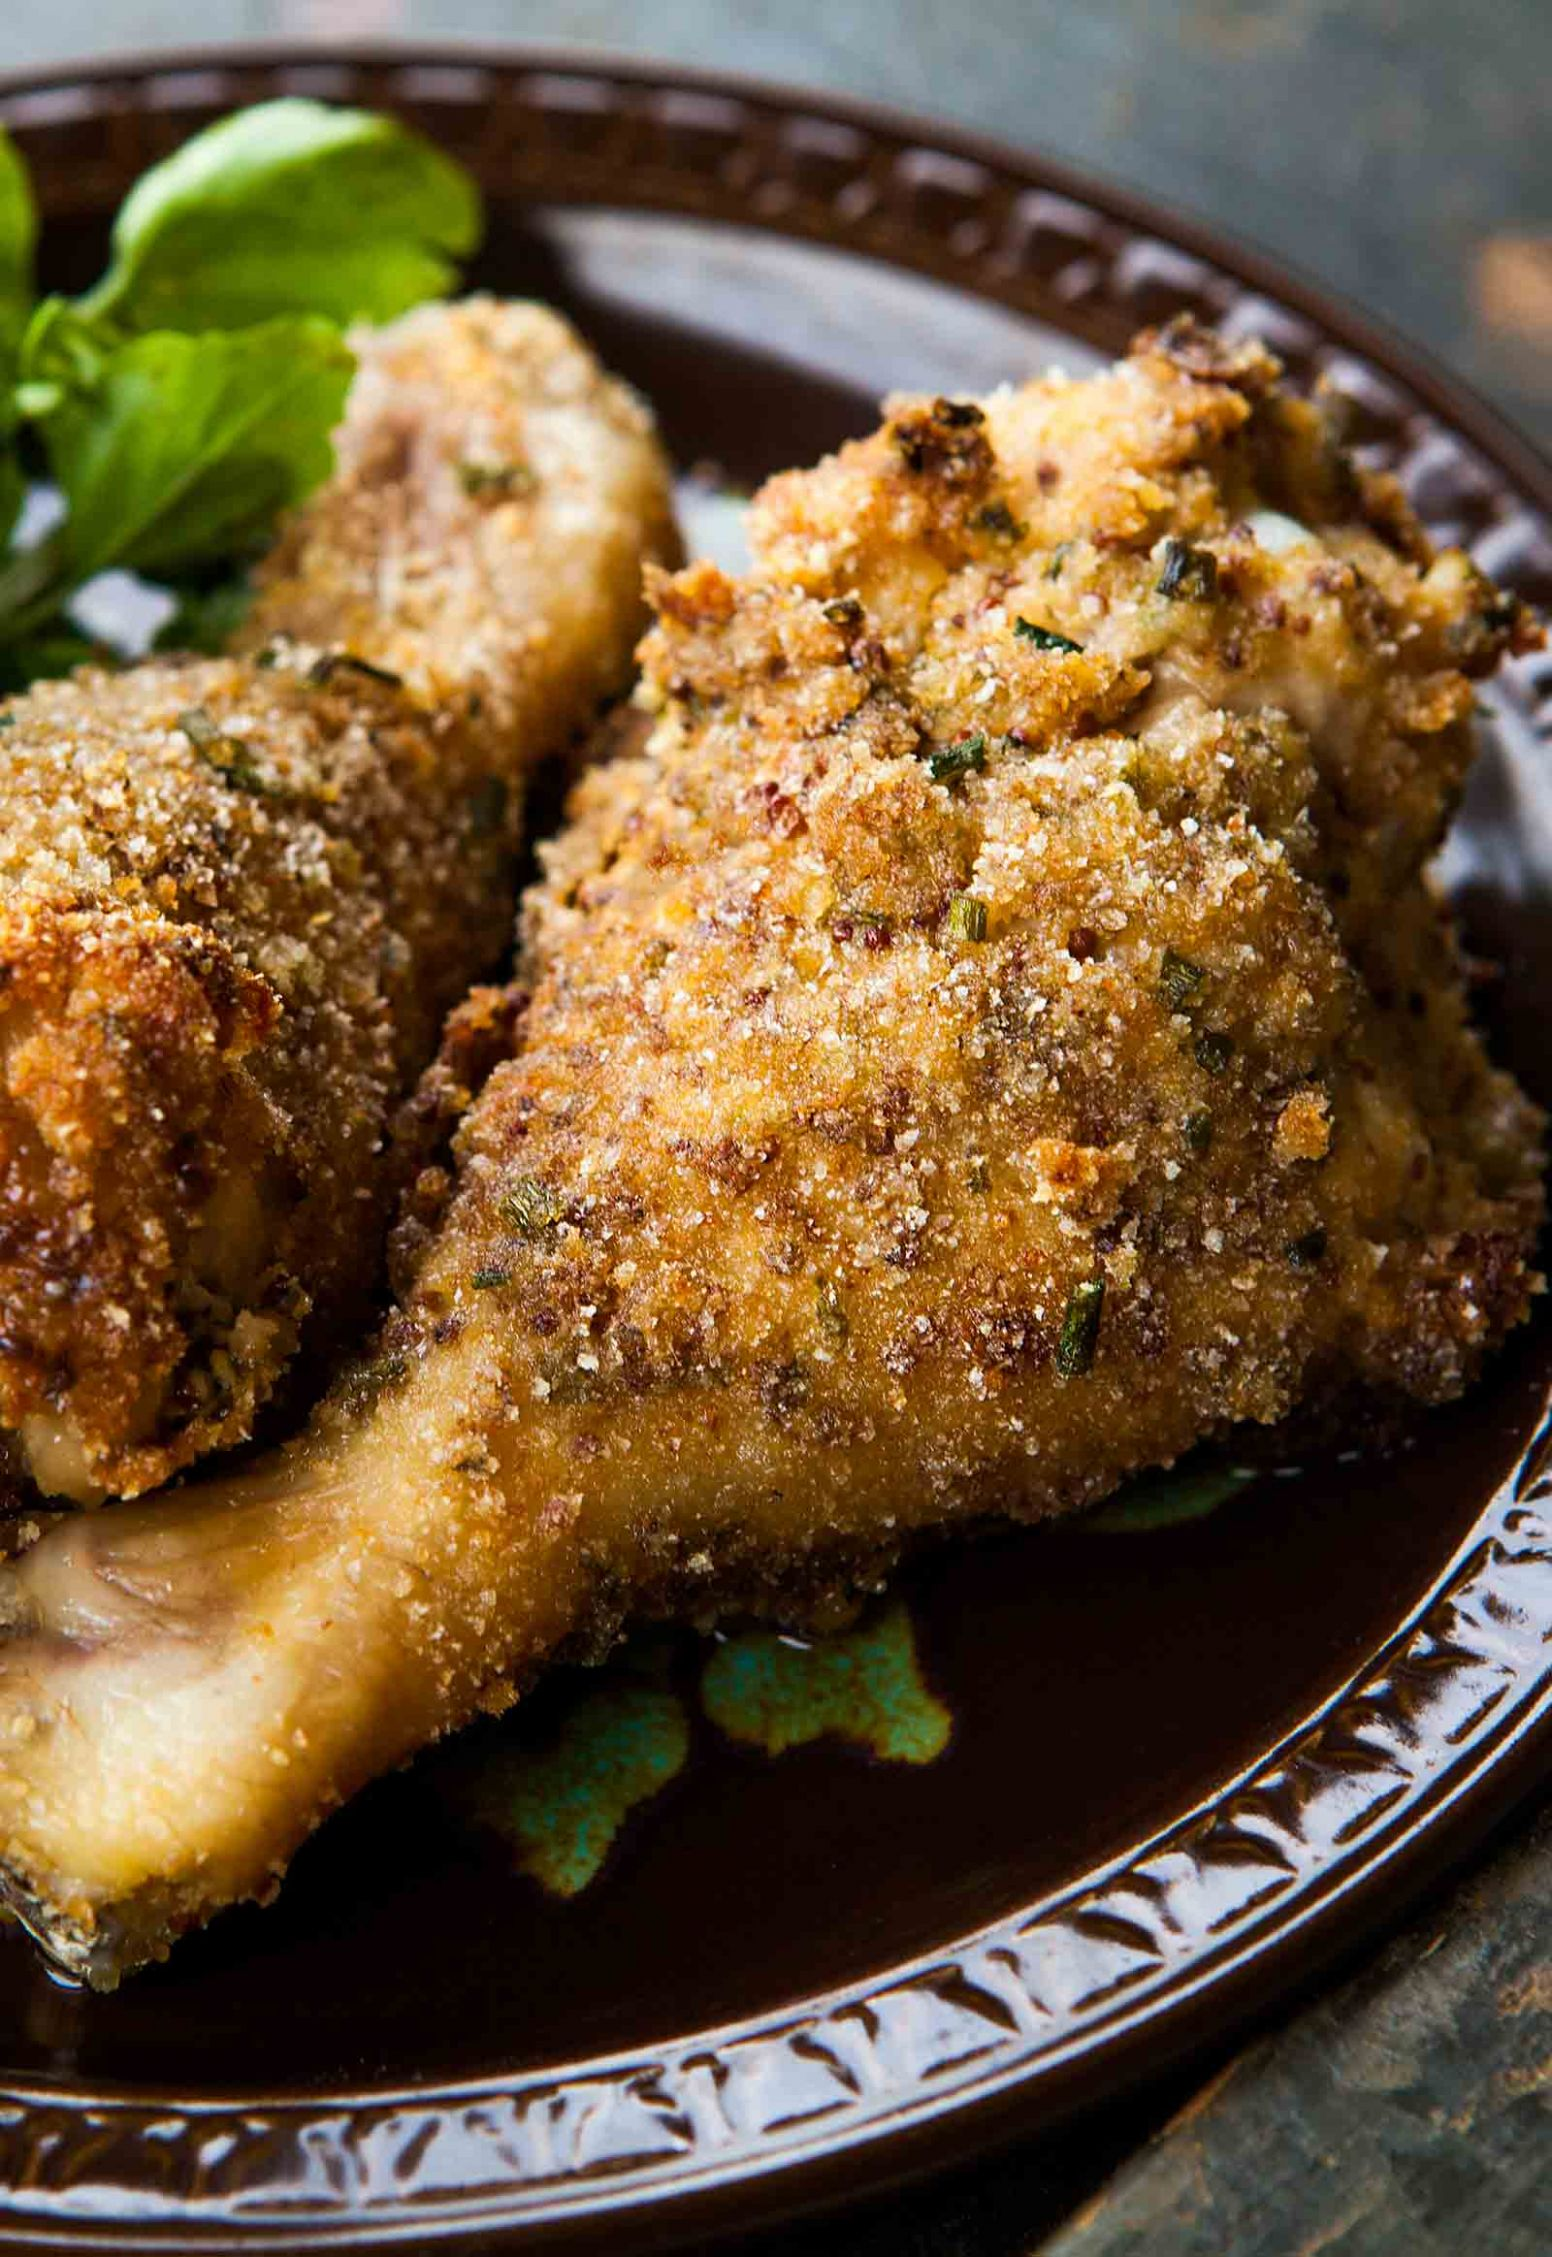 Breaded and Baked Chicken Drumsticks - Recipes Chicken Legs Oven